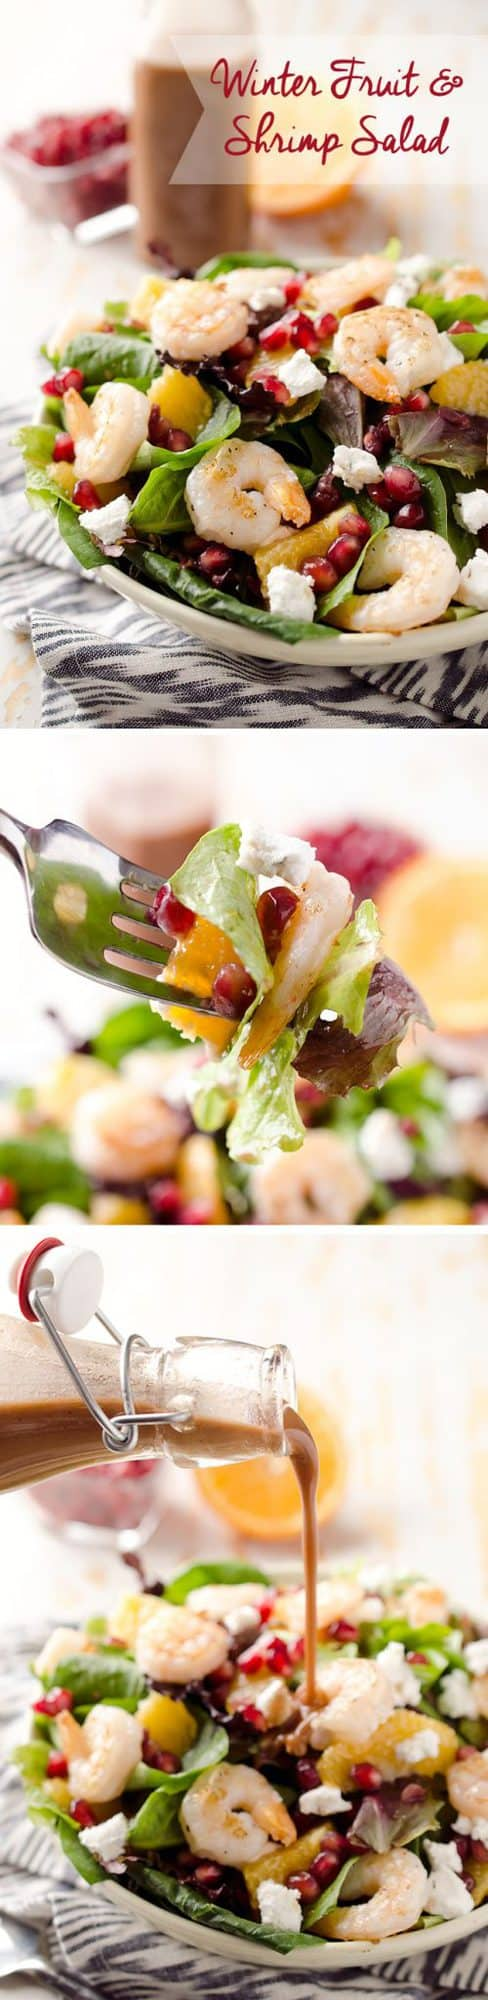 winter fruit shrimp salad is a healthy entree salad filled with sweet ...